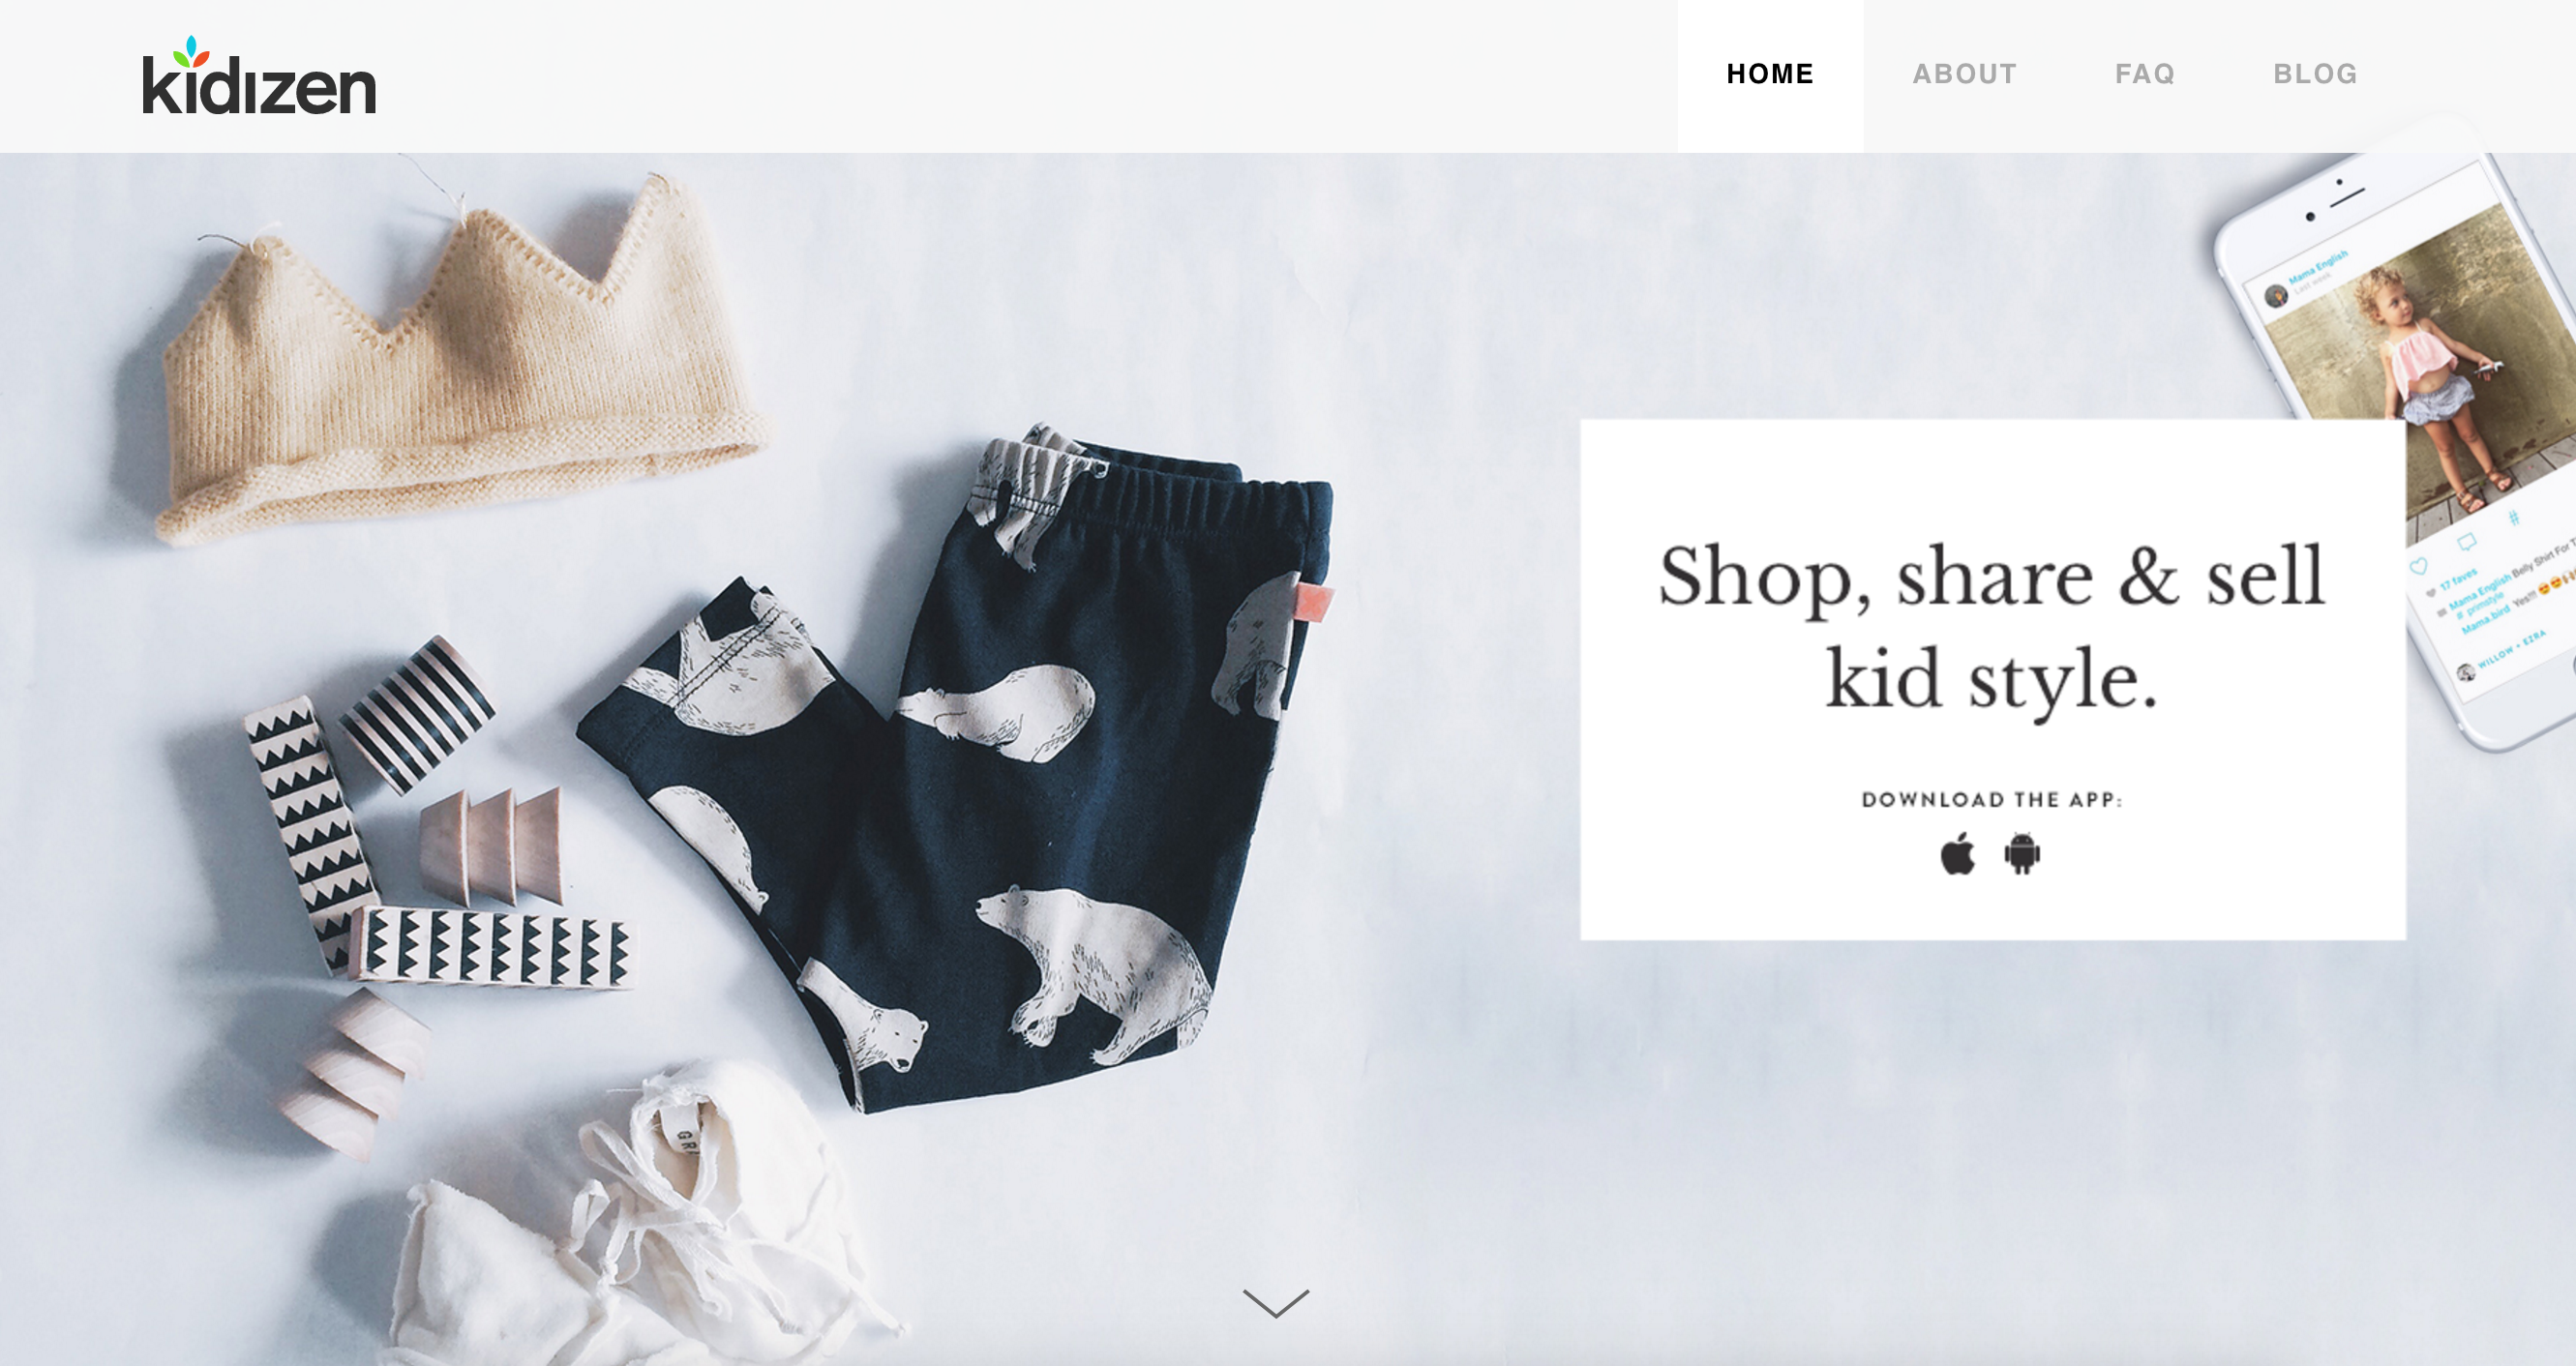 Kidizen encourages parents to recycle clothes their kids have grown out of.